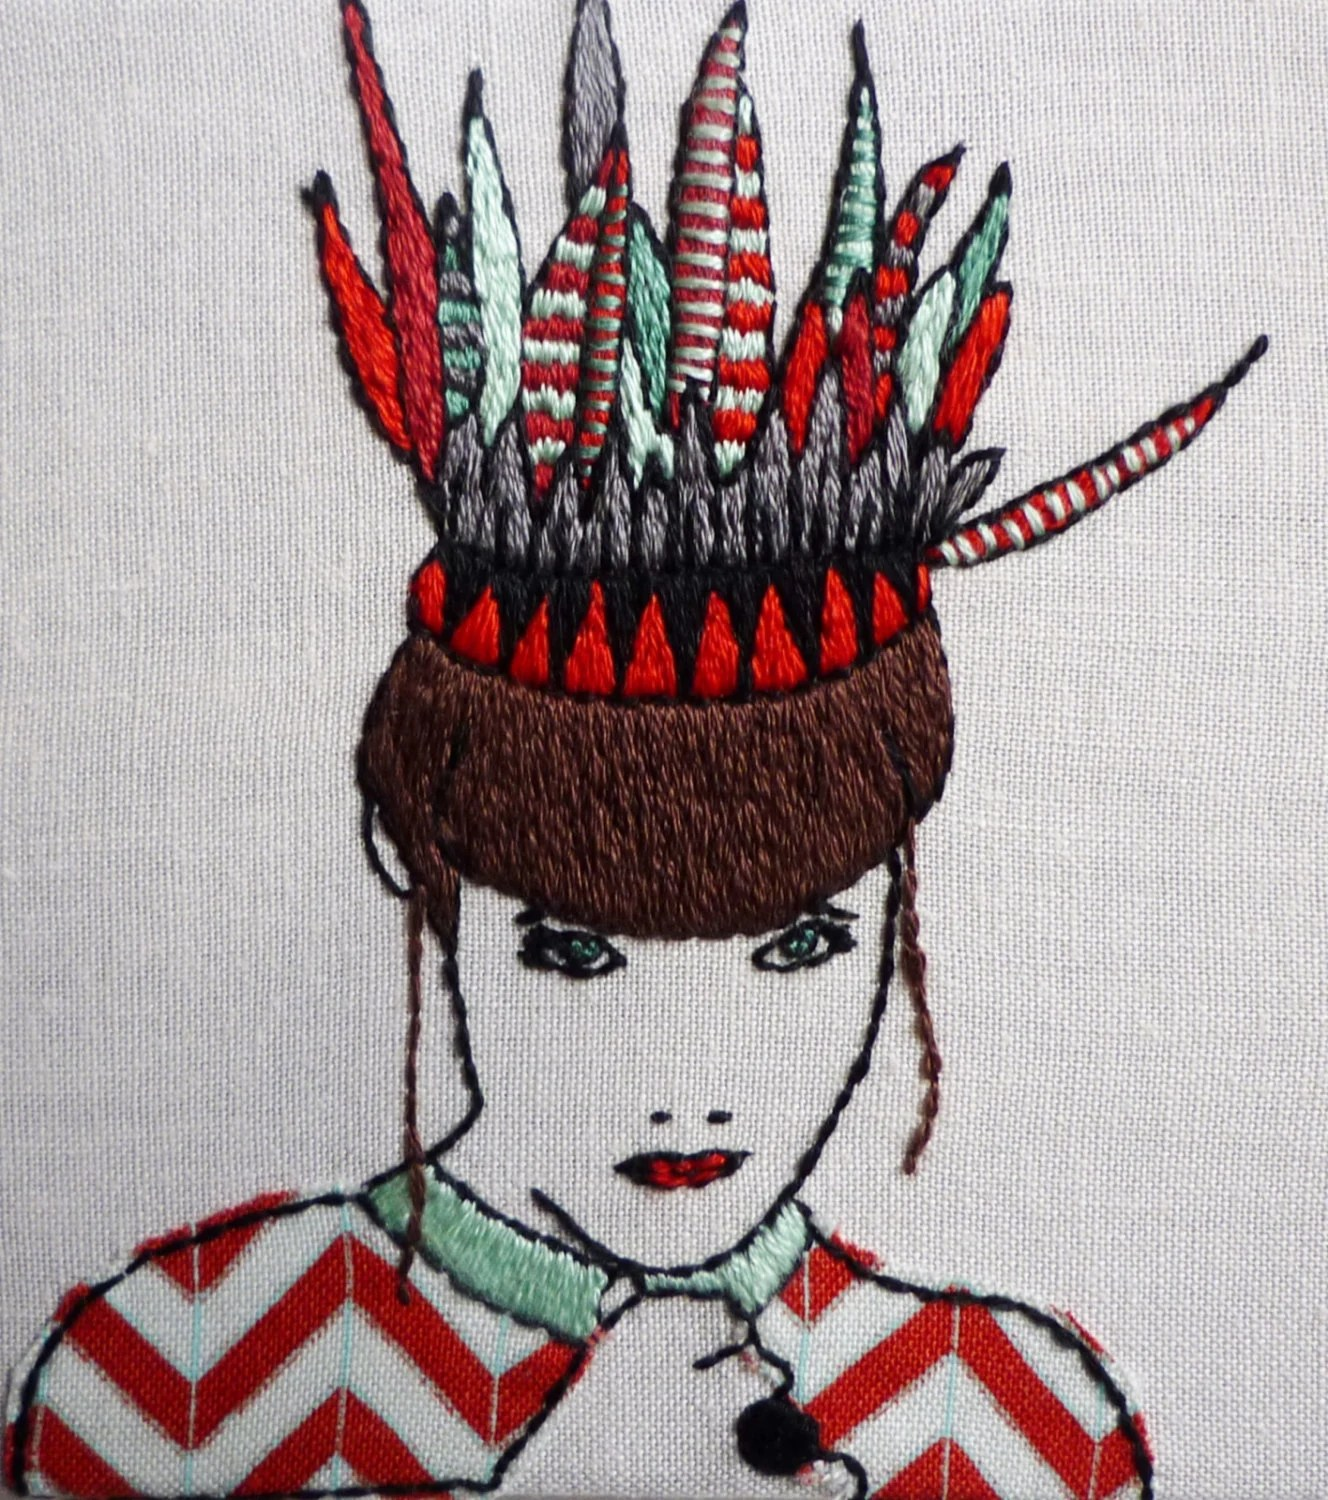 Modern Embroidery, 'Fifi' 4x4inch by Cheese Before Bedtime